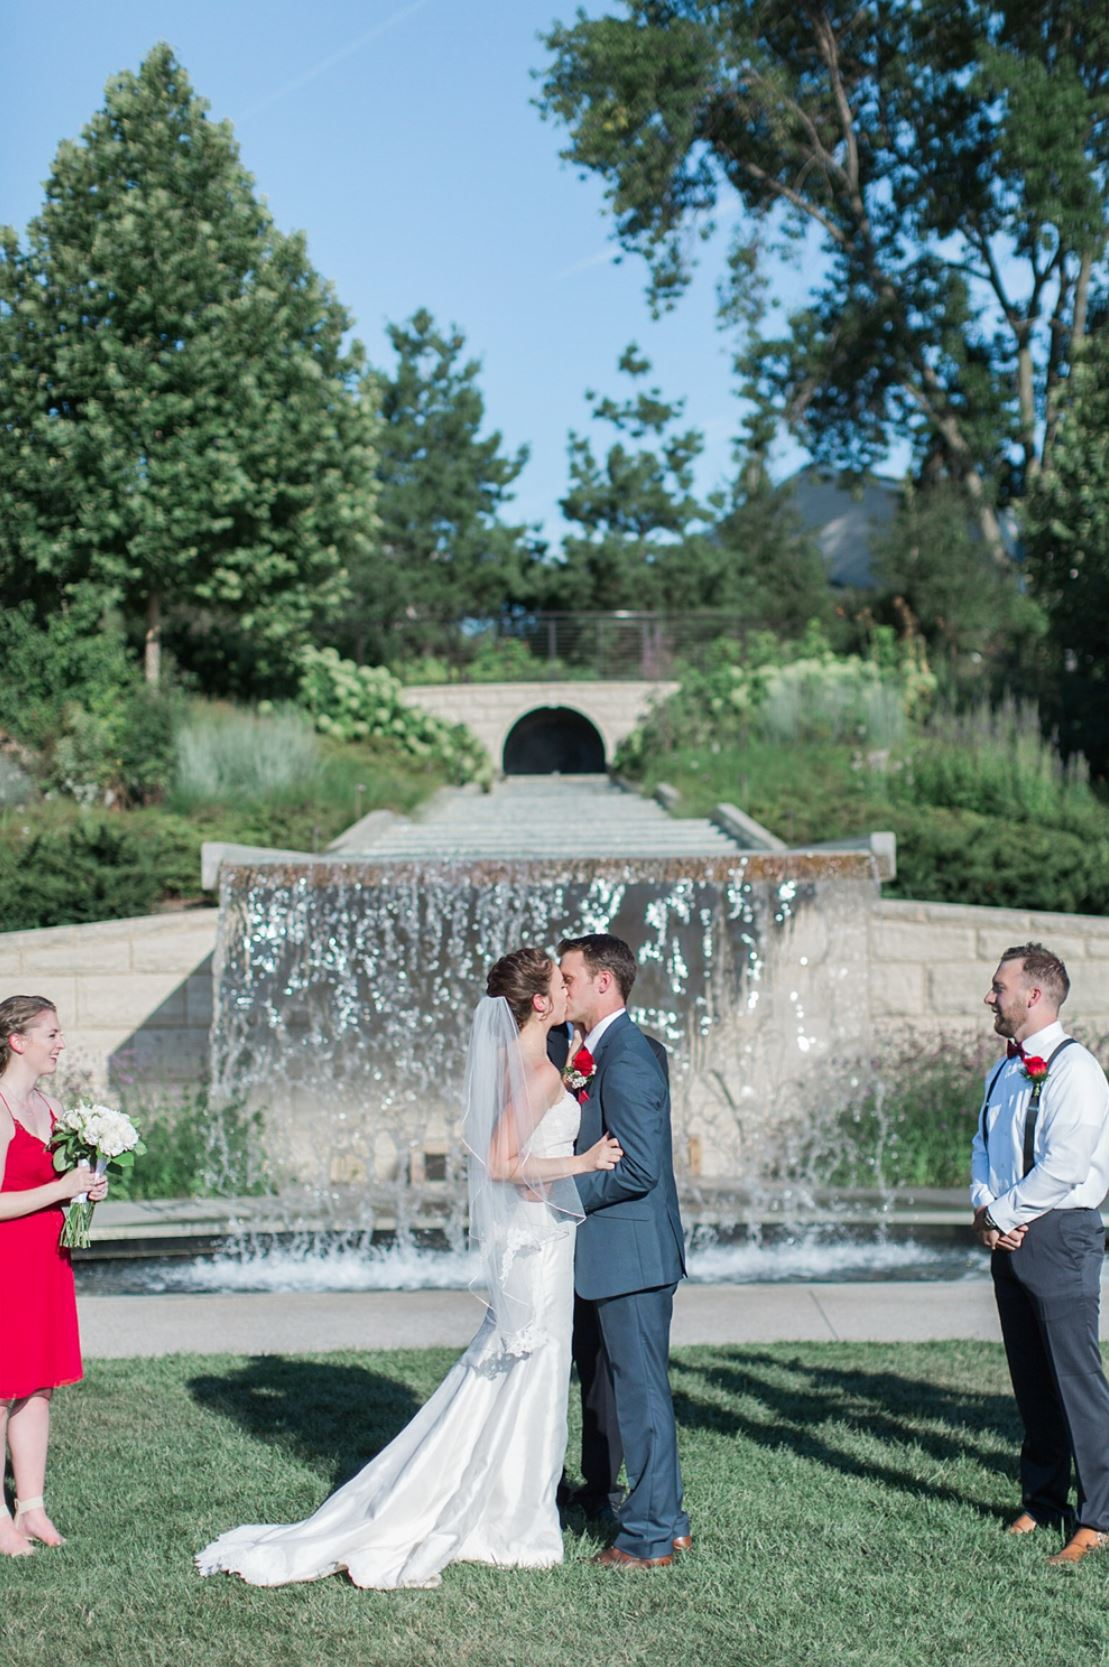 A briode and a groom are kissing each other in Iowa.